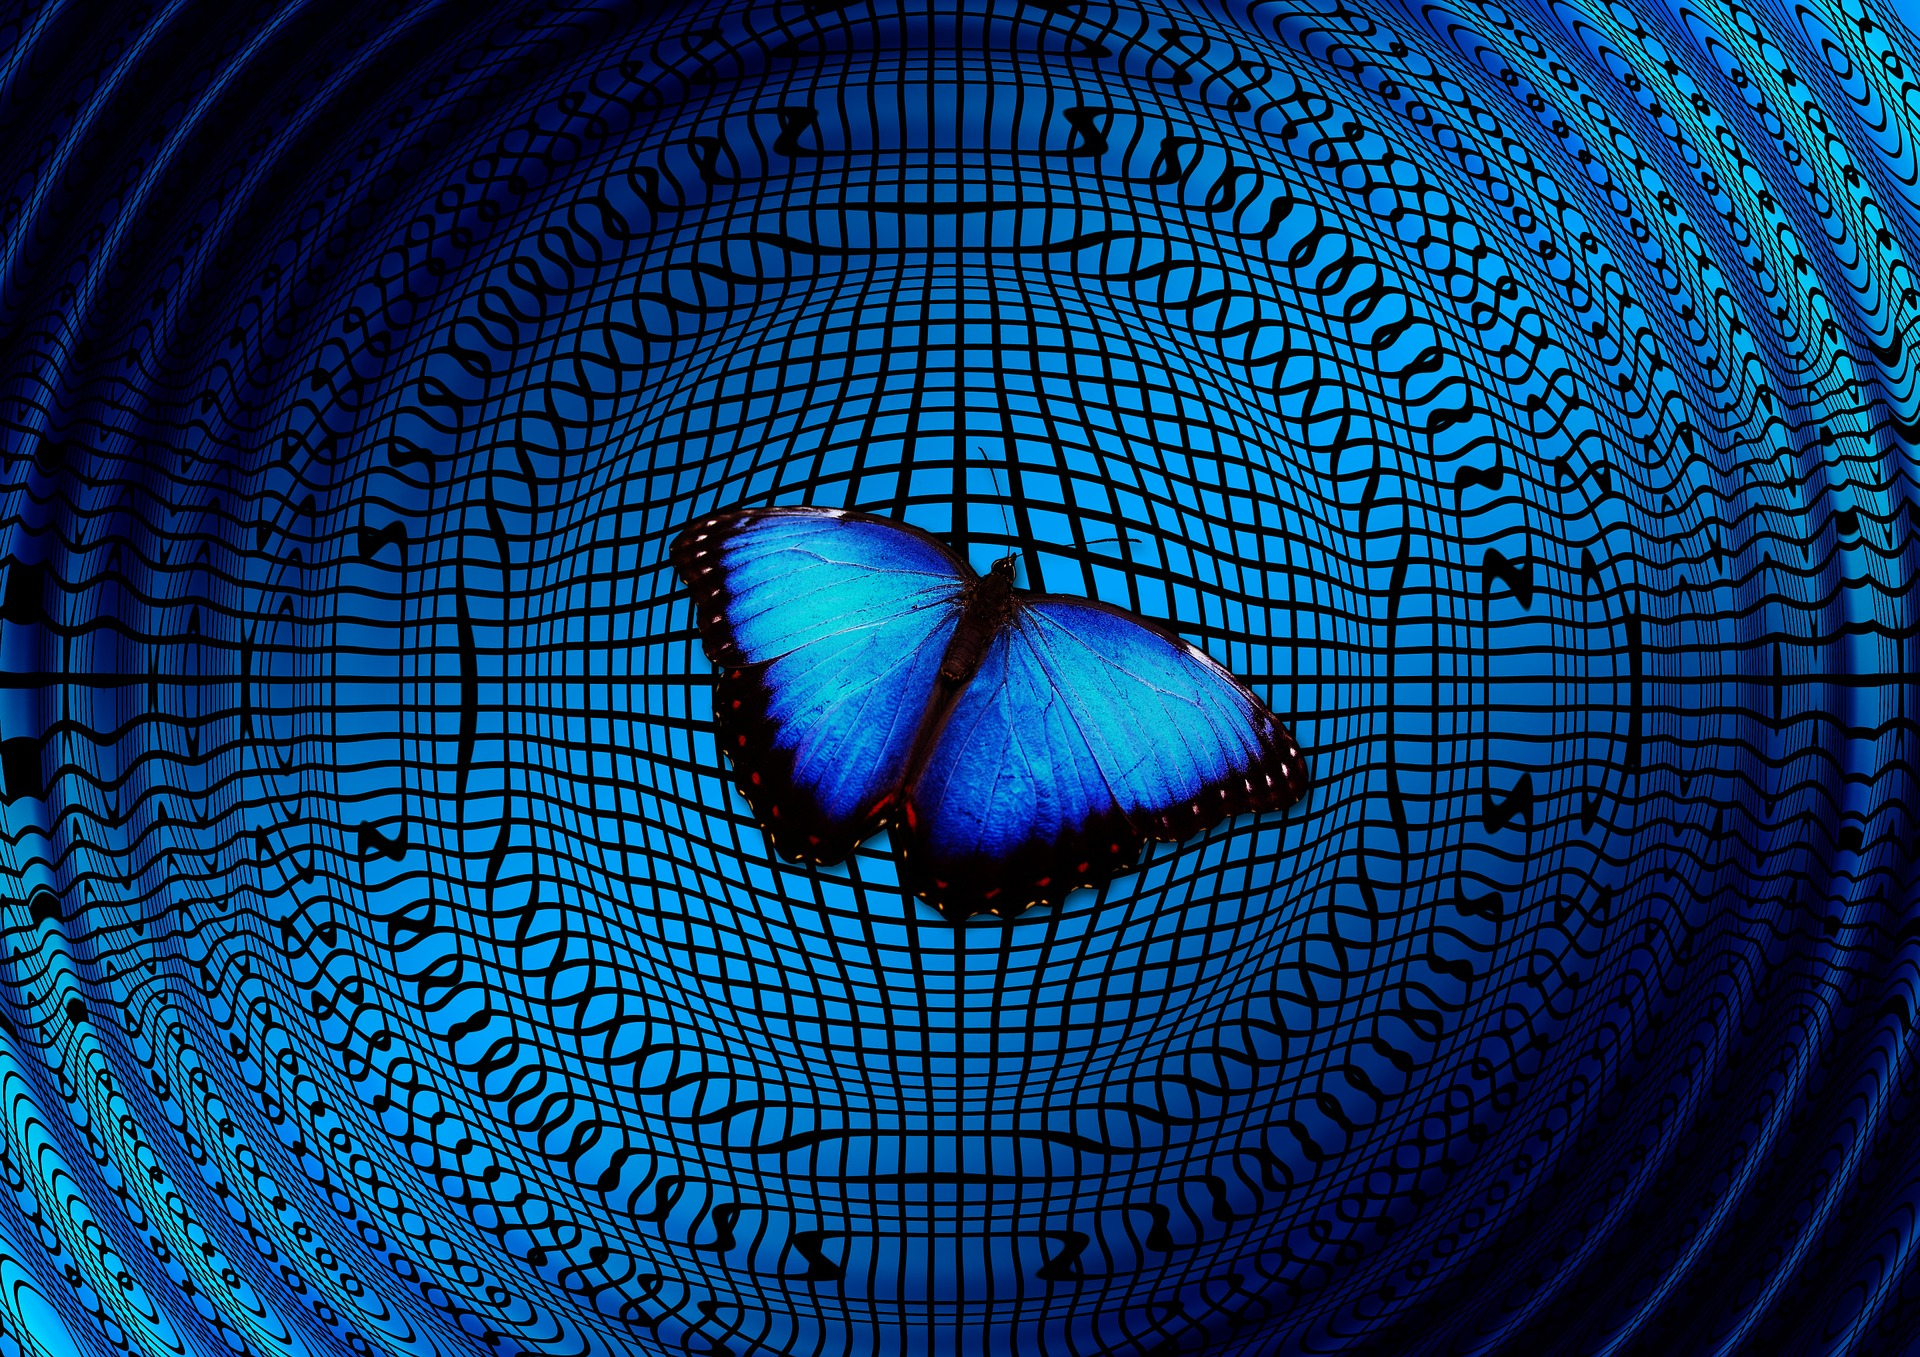 Blue butterfly on a blue textured background